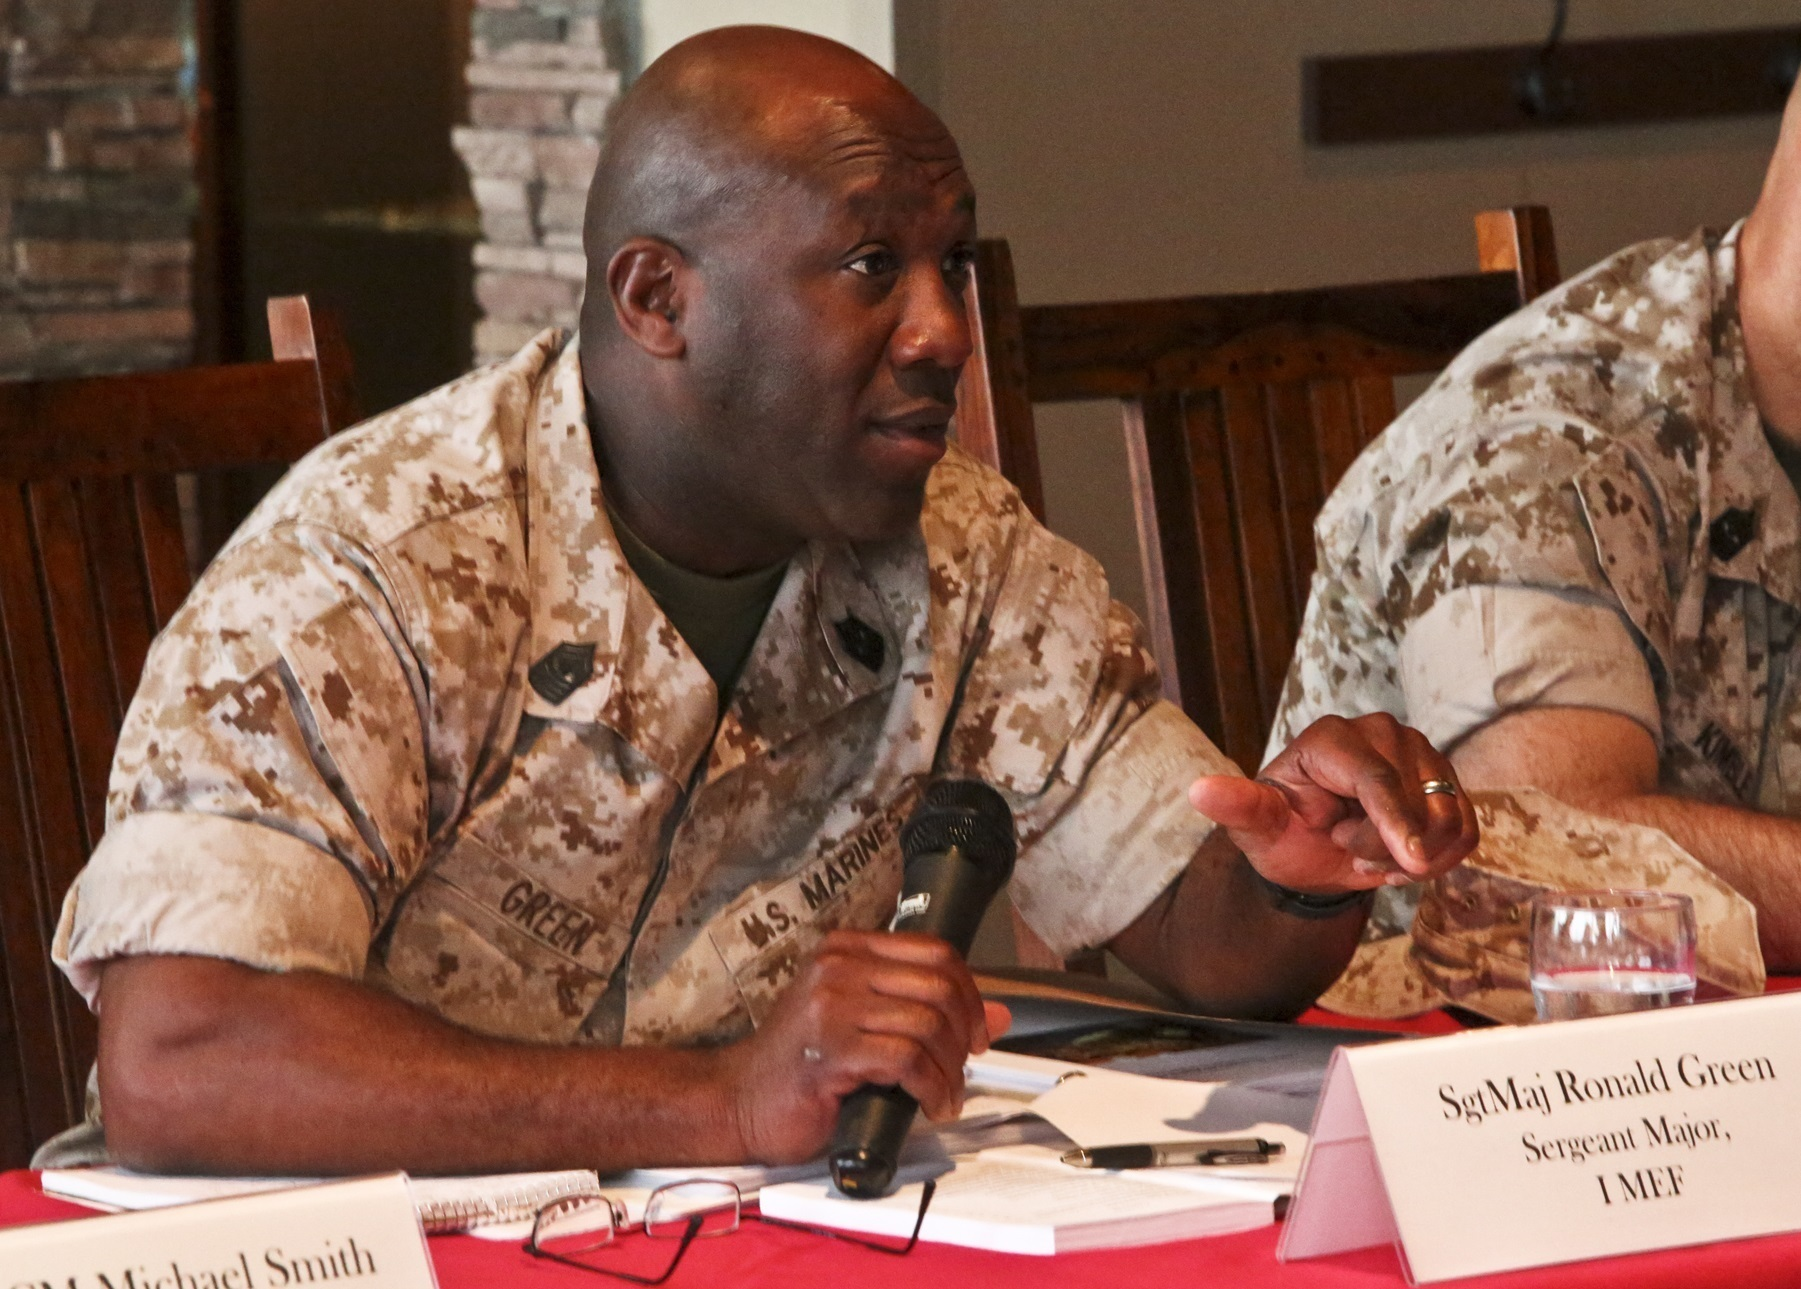 Sgt. Maj. Ronald Green, sergeant major for I Marine Expeditionary Force, expresses his ideas to representatives of the Department of Defense Military Compensation and Retirement Modernization Commission aboard Camp Pendleton, Calif., March 25. The Commission's goal is to update programs and resources to fit the changing needs of service members.